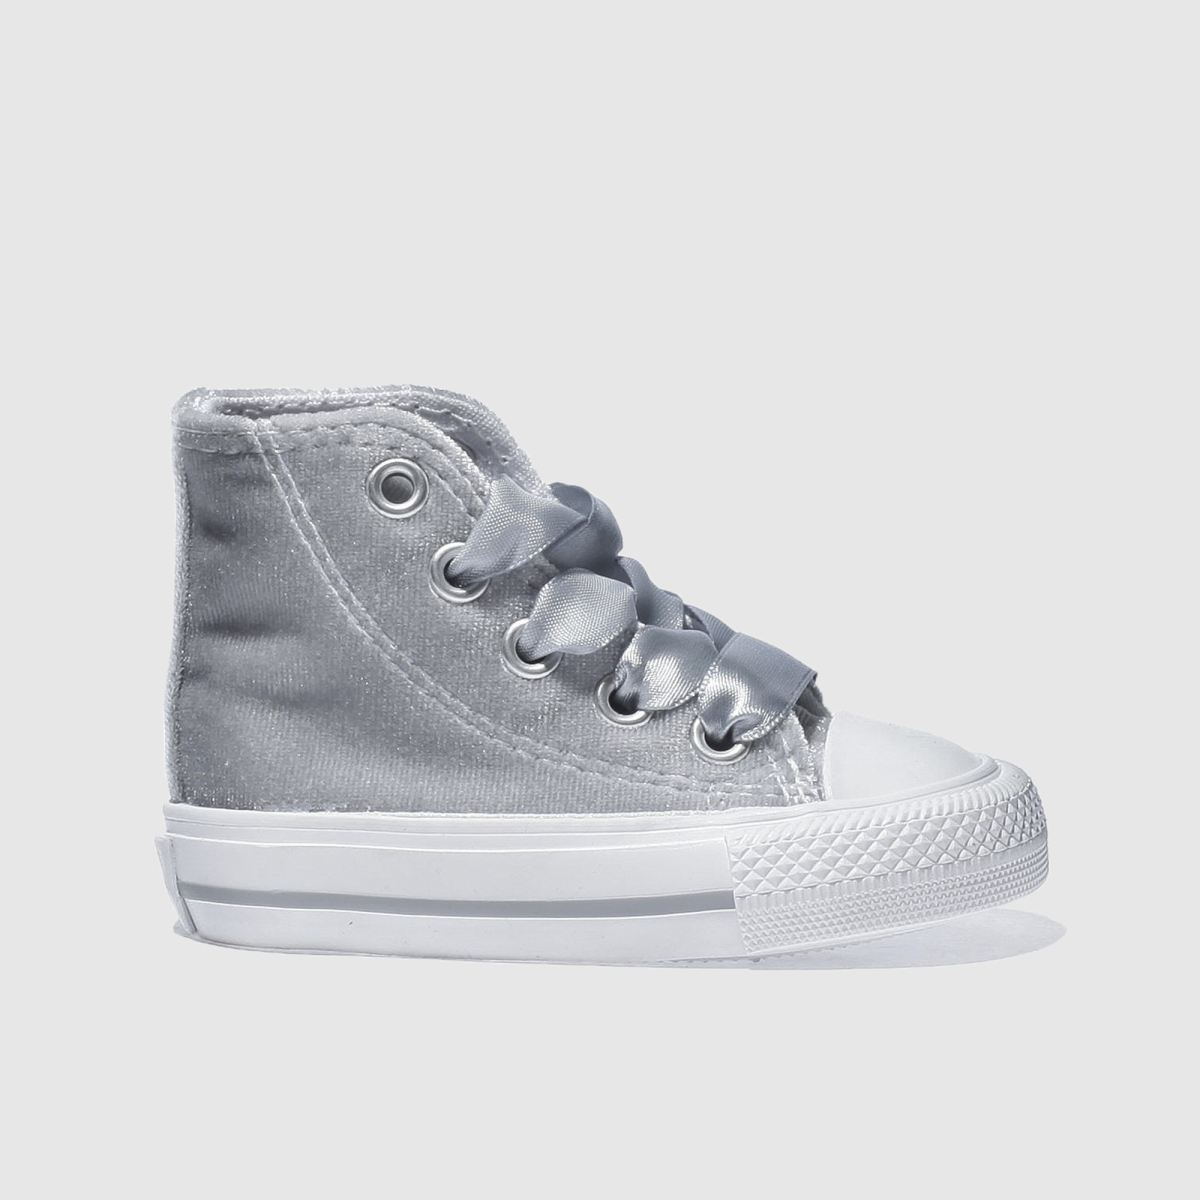 converse silver all star velvet hi Girls Toddler Trainers